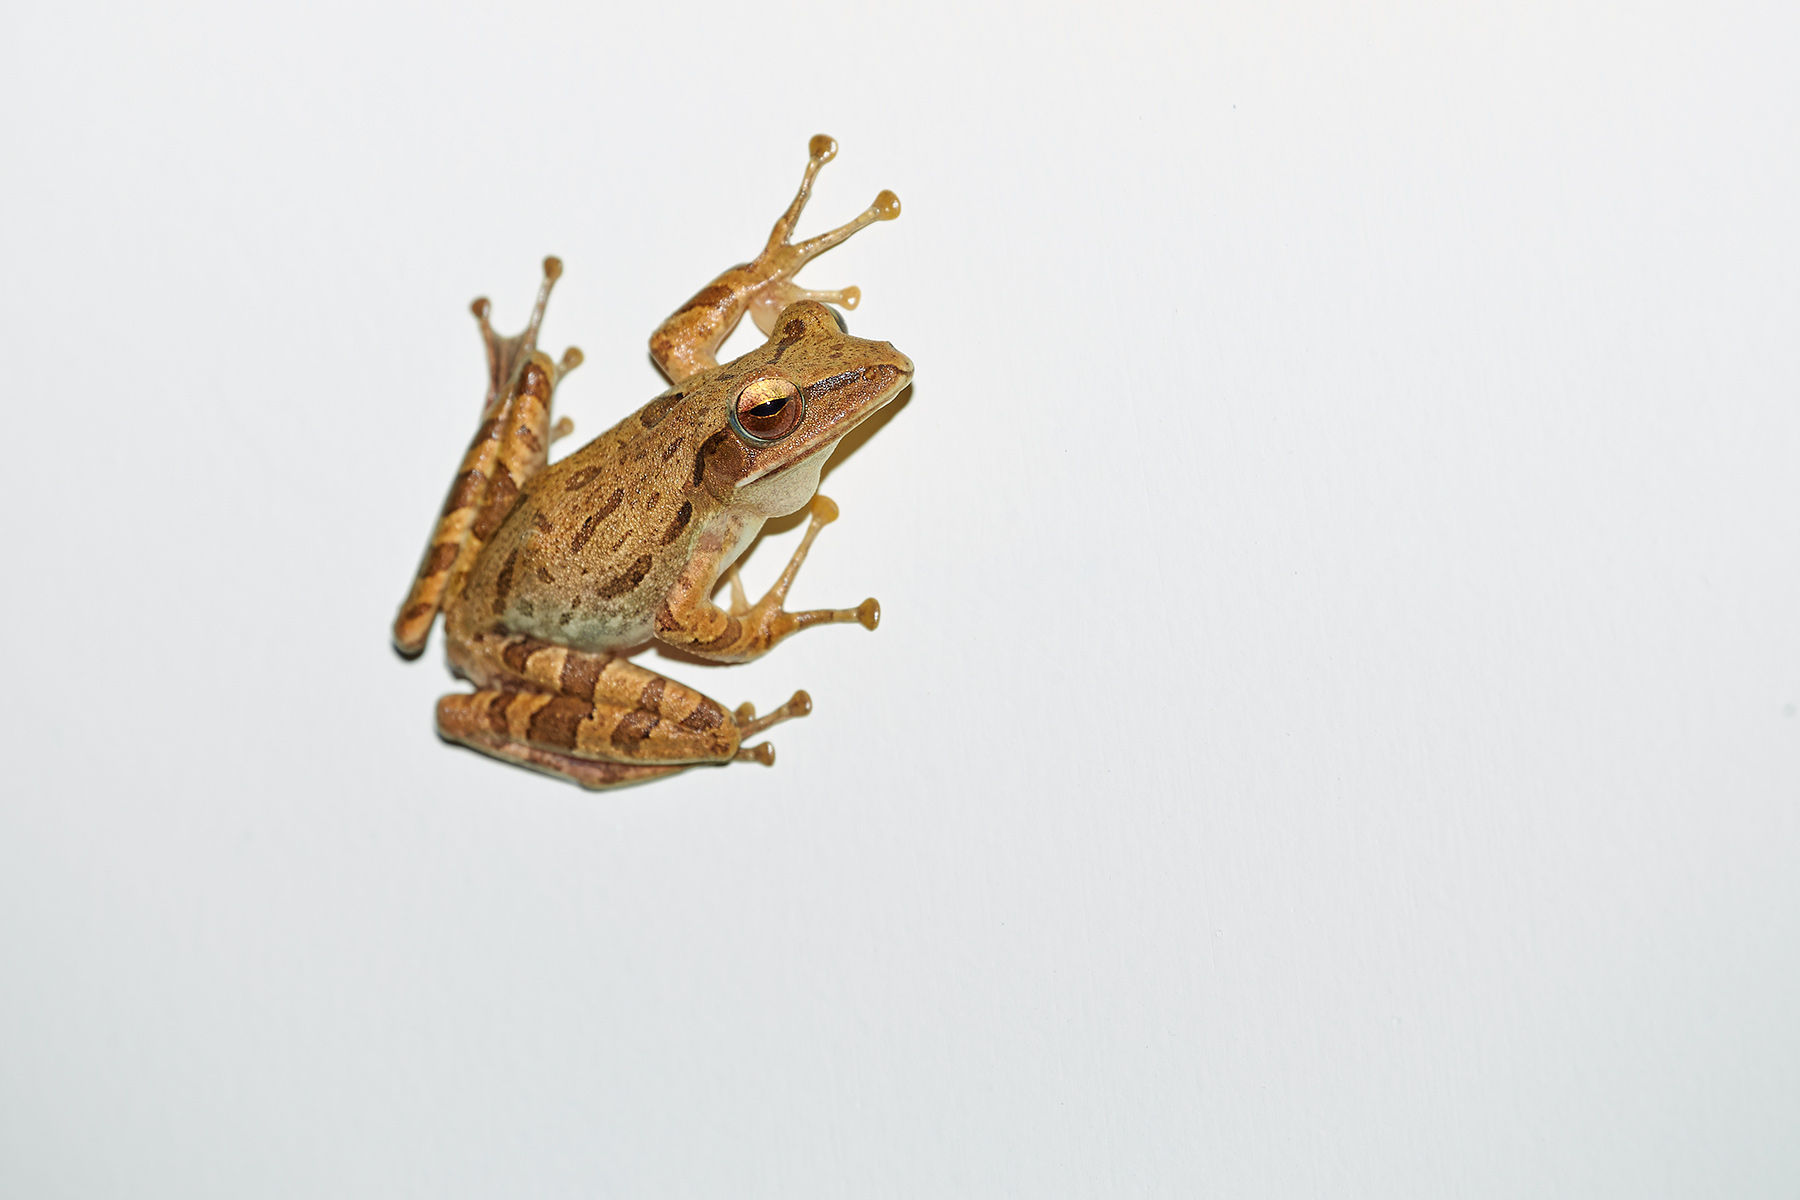 Asian Brown Treefrog